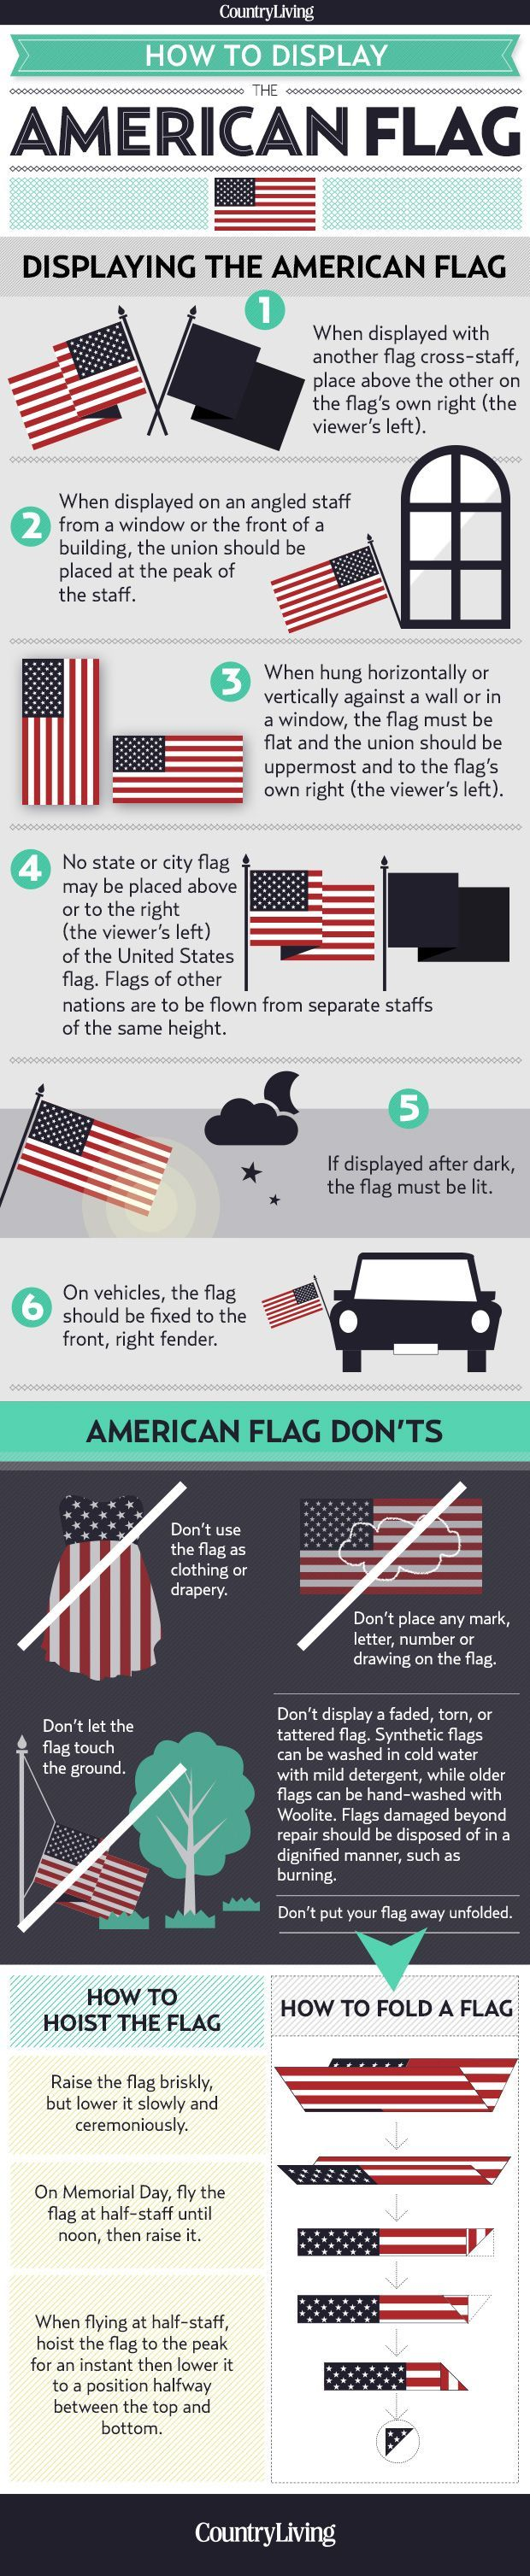 Displaying the Flag: Proper American Flag Etiquette   ~ The dos and don'ts of how to properly display the American flag.